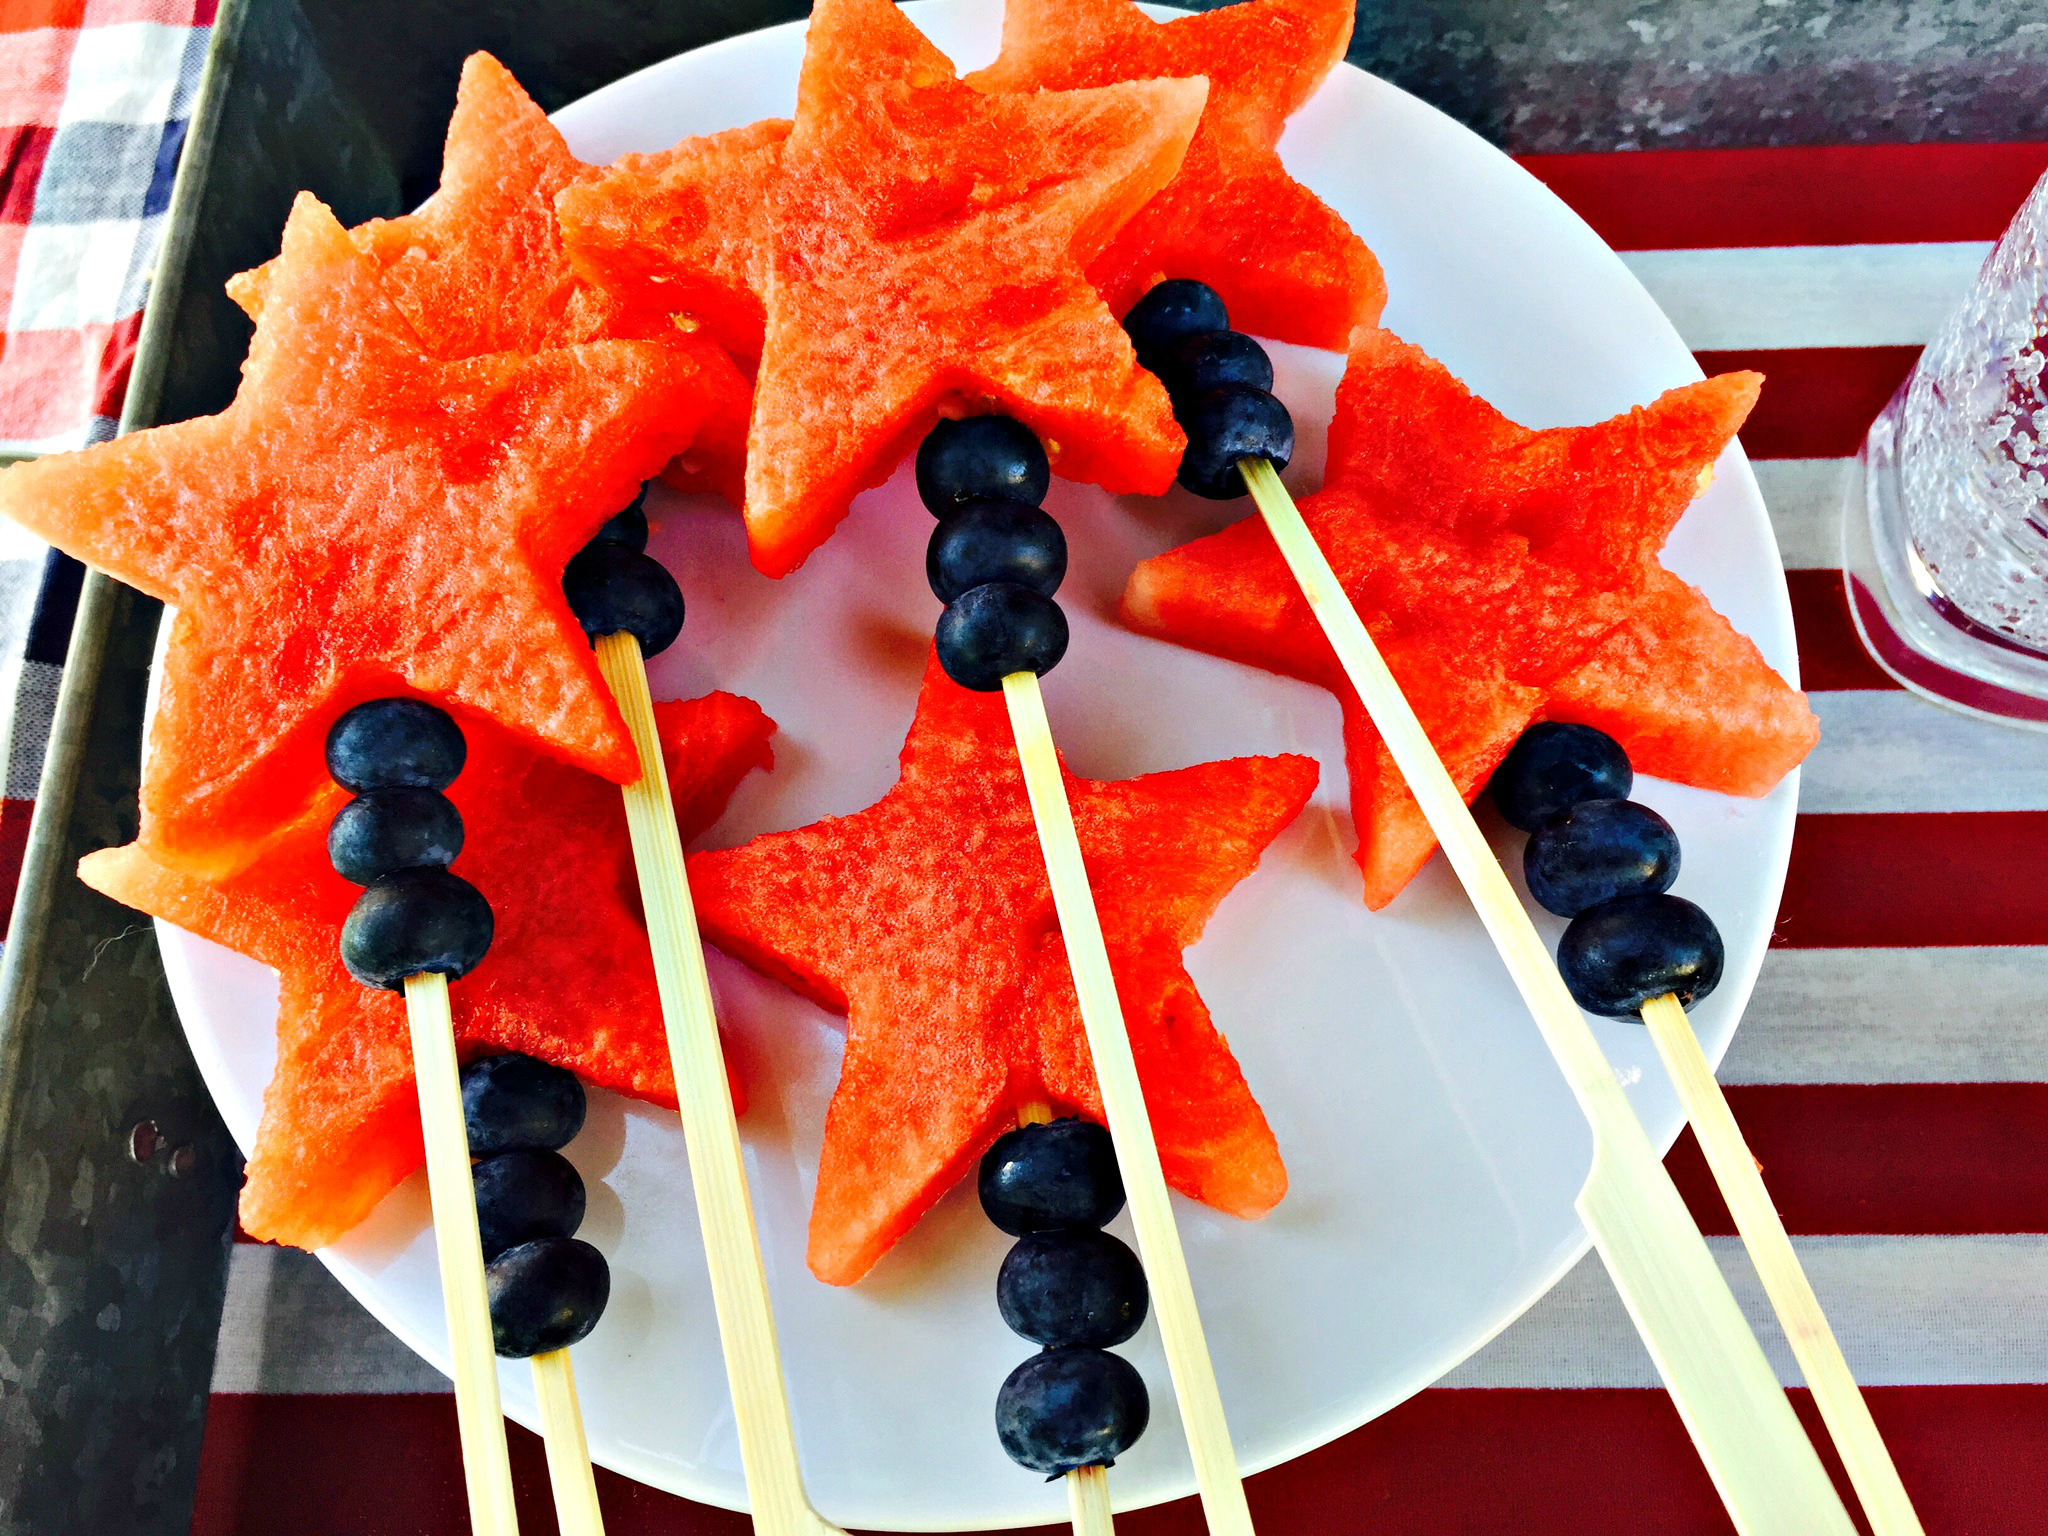 Entertaining Ideas For The Fourth of July